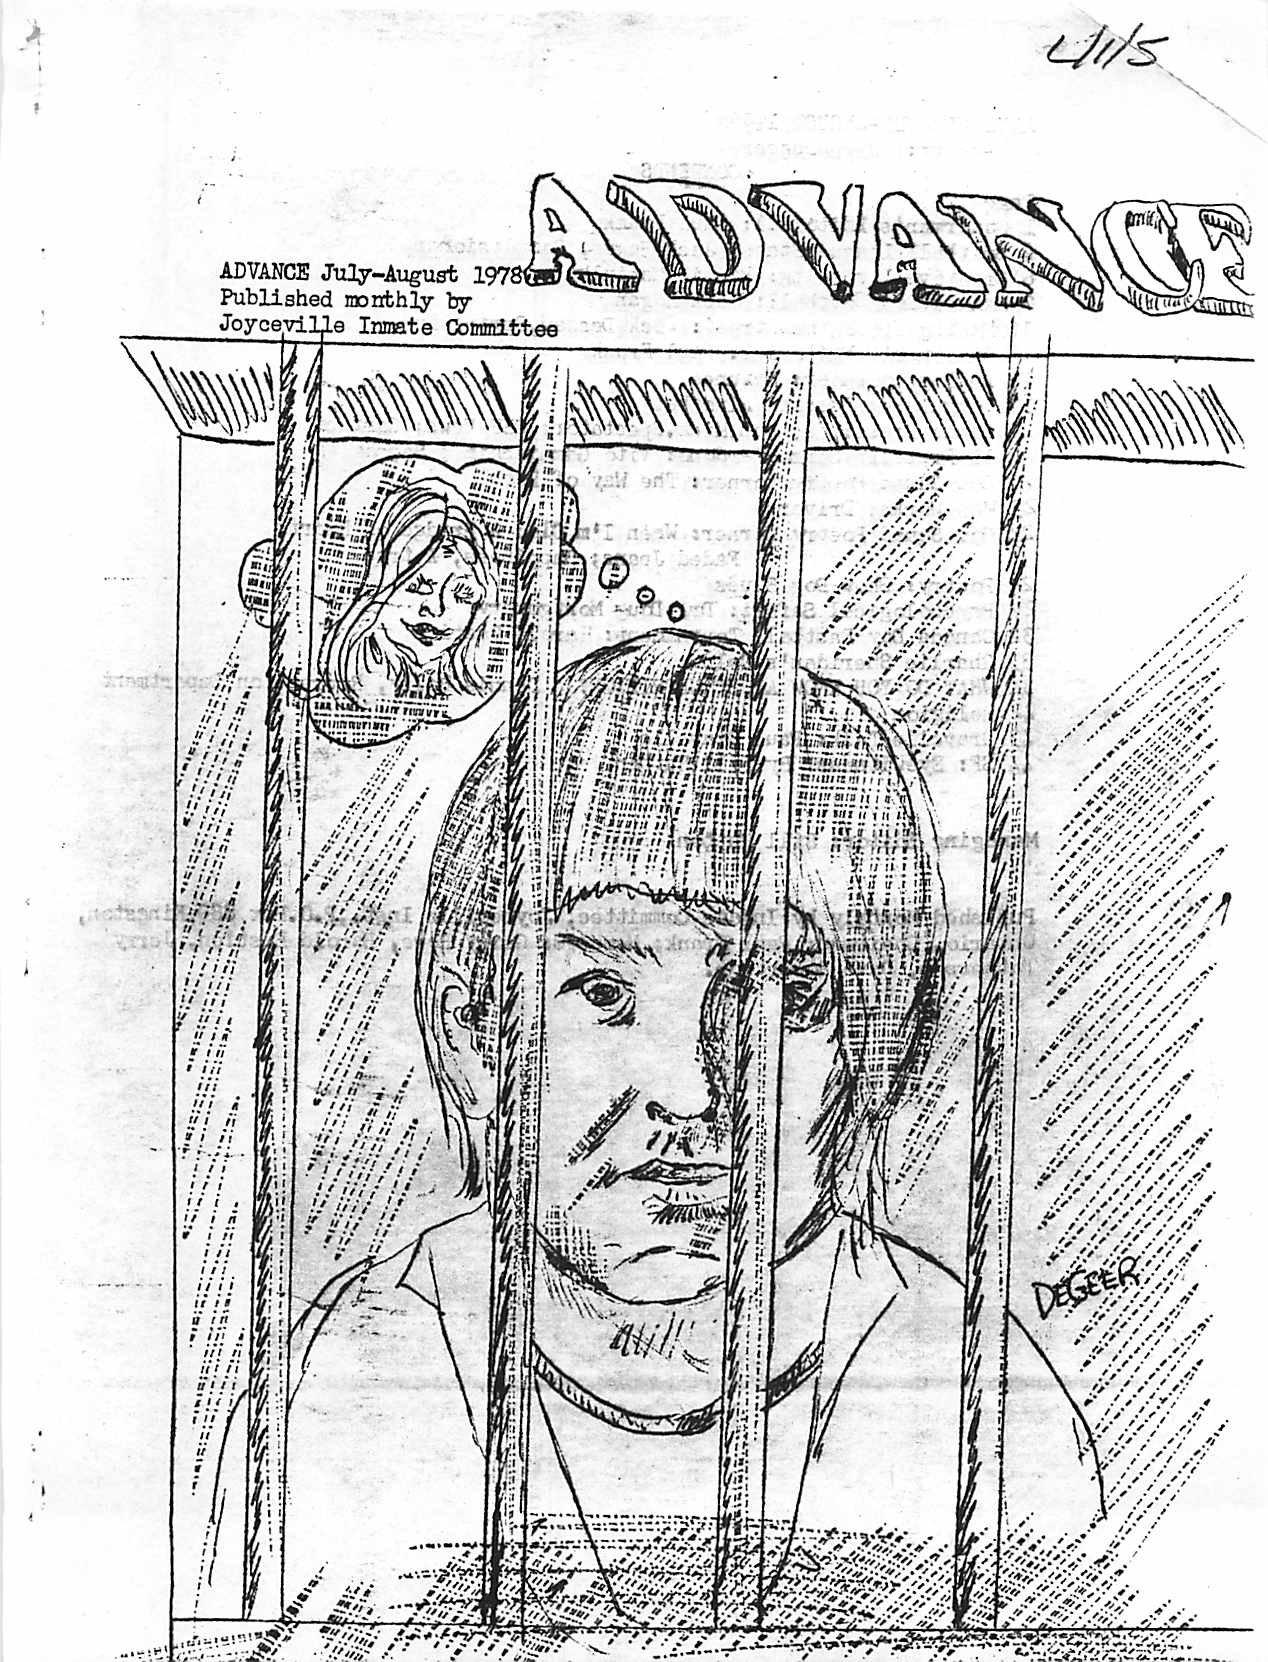 Read more about the article The Advance – Jul/Aug 1978